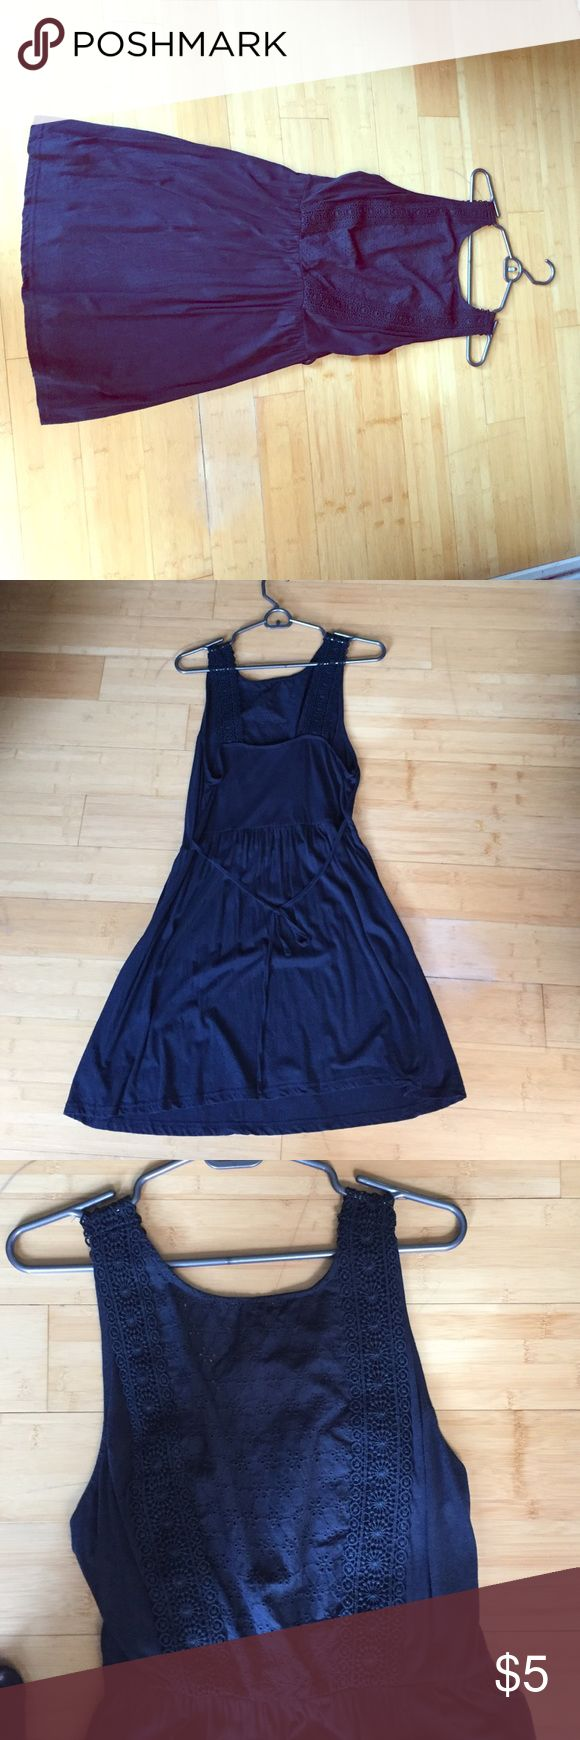 Primark Empire Waist Dress 💯 cotton! Great for summer. Tie at waist. Hits just above the knee on me and I'm 5 ft 6. Worn twice! Goes great with pearl and a cardigan! Primark Dresses Mini